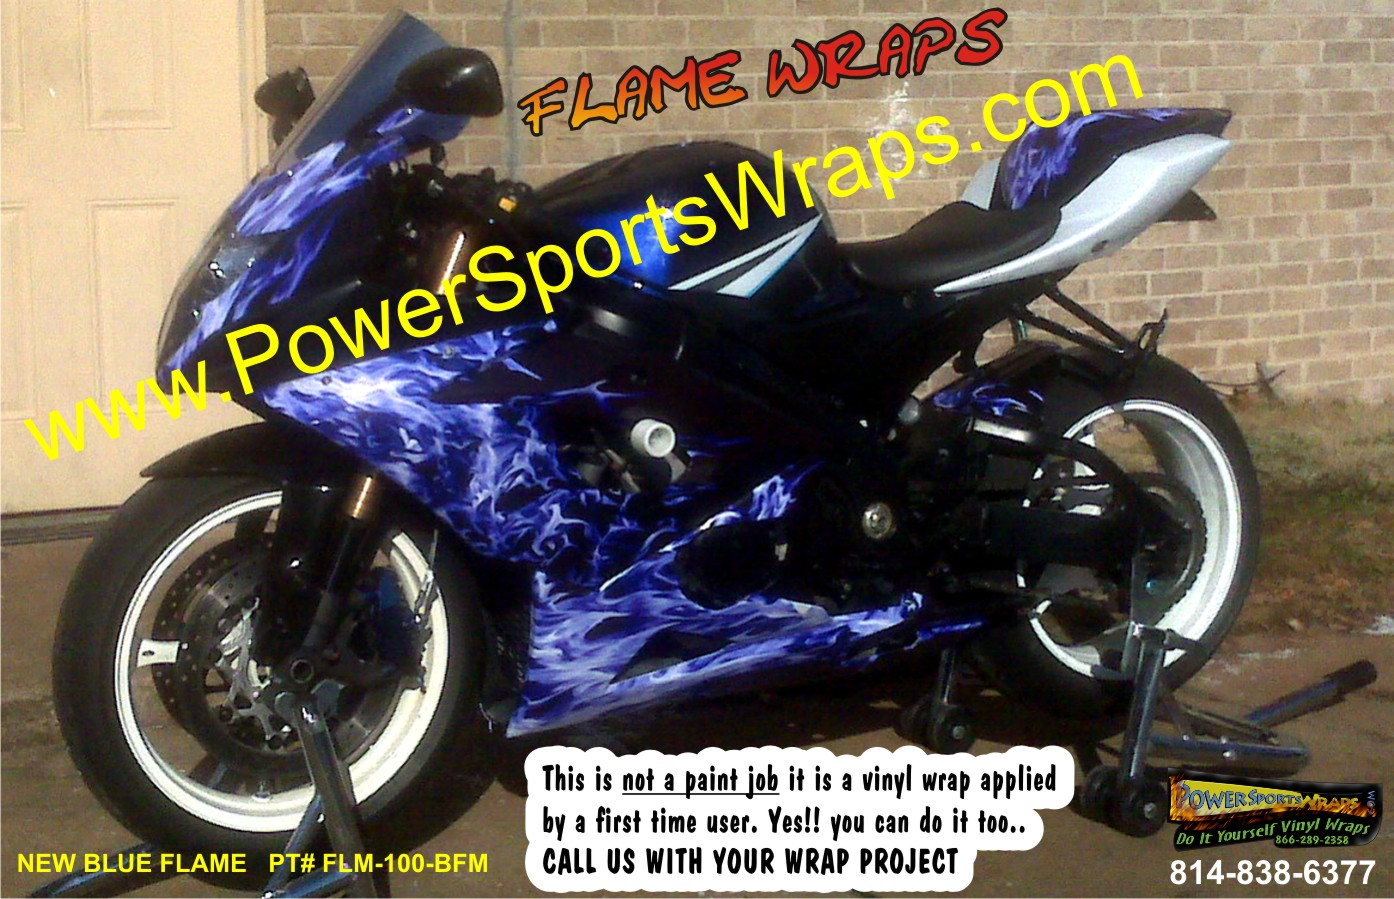 Bike Wrap Archives Page Of Powersportswrapscom - Vinyl bike wrapmotorcycle wrap archives powersportswrapscom